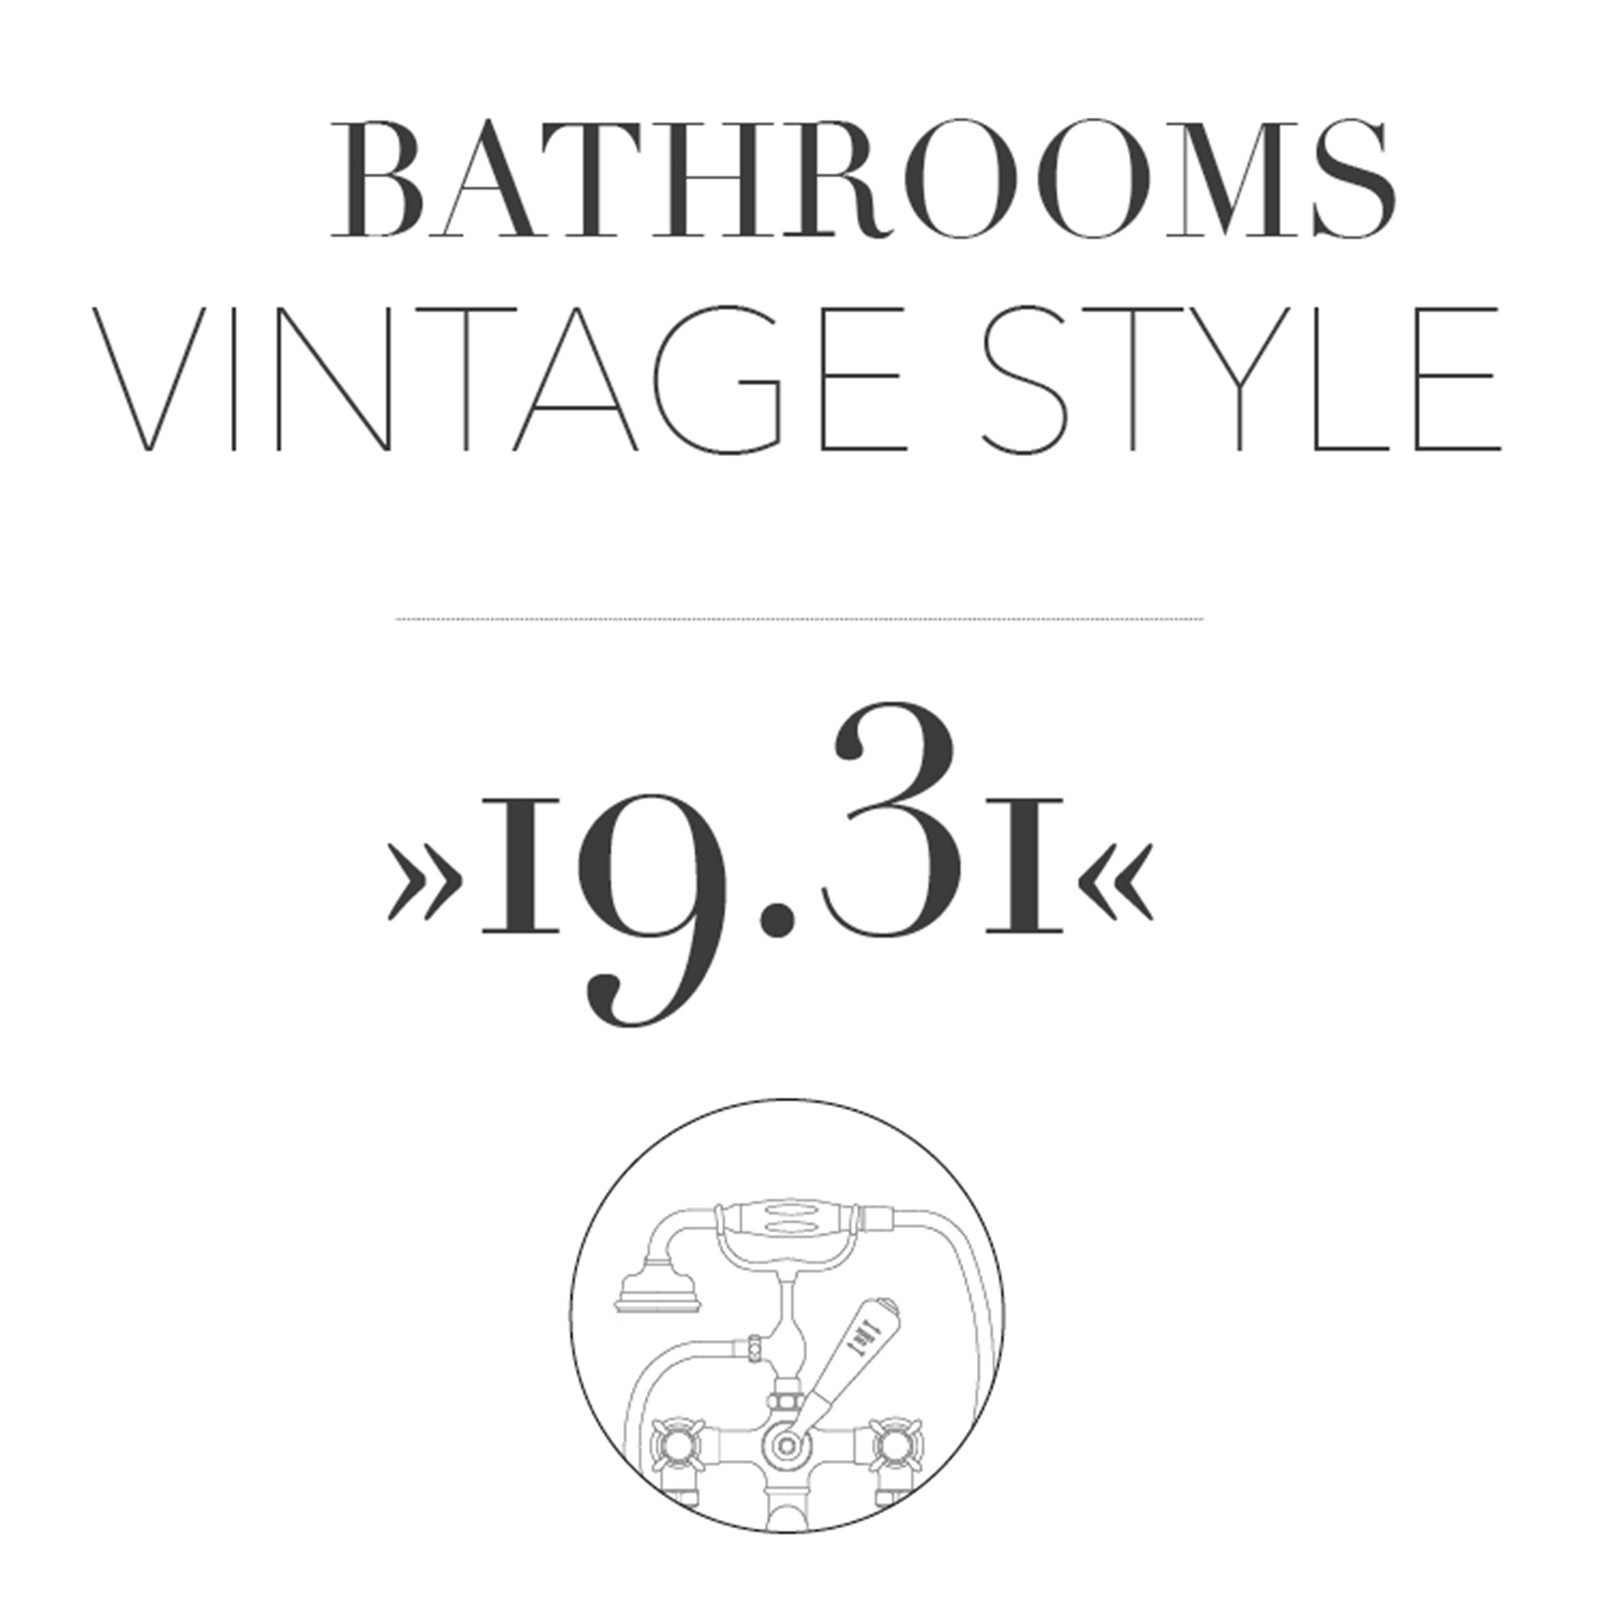 Bathrooms Vintage Style